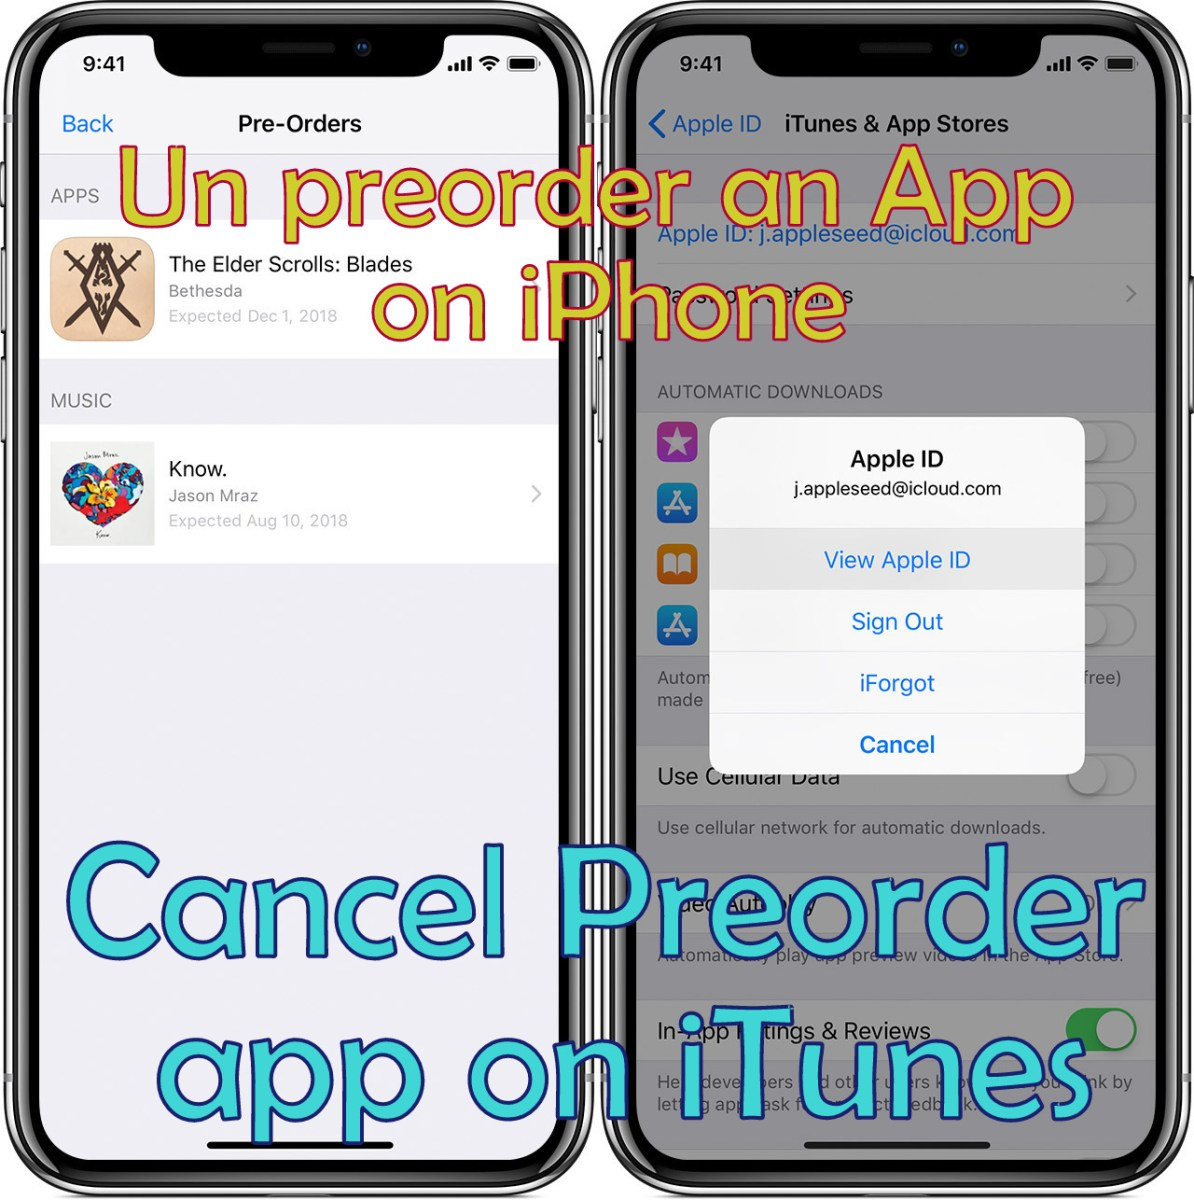 How to Un PreOrder an App on iPhone or Cancel Pre-order